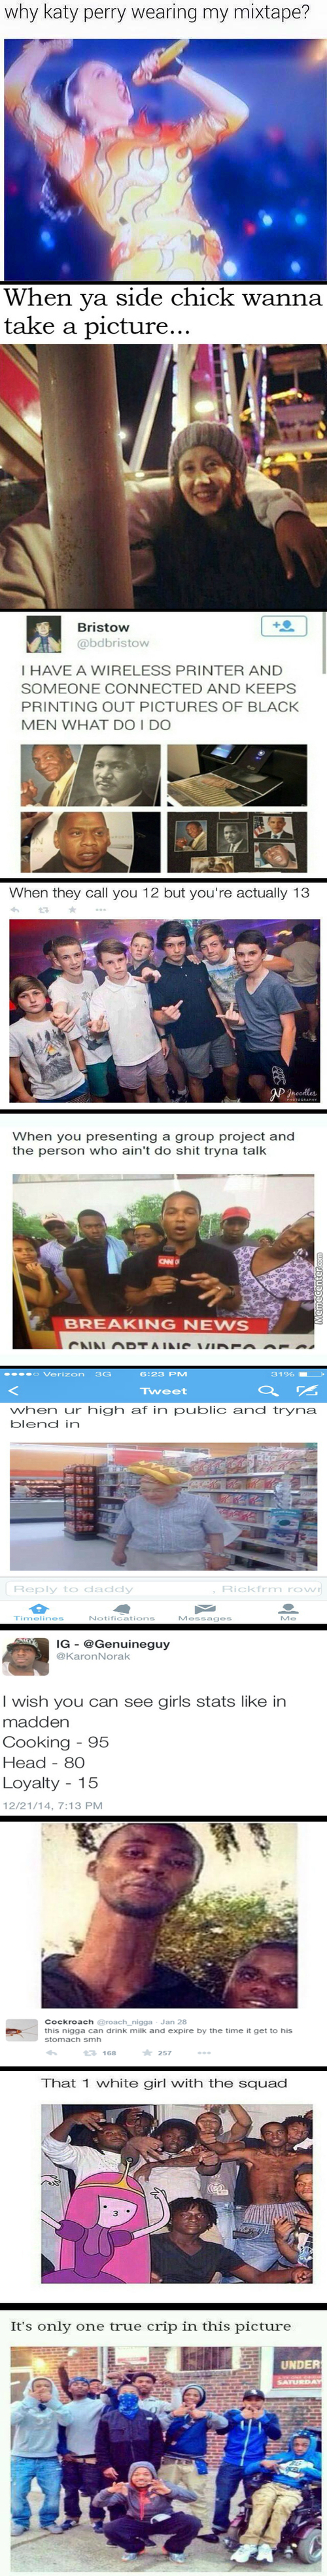 Another Black Twitter Compilation (Anyone Else Think It's Just White People Acting Black?)